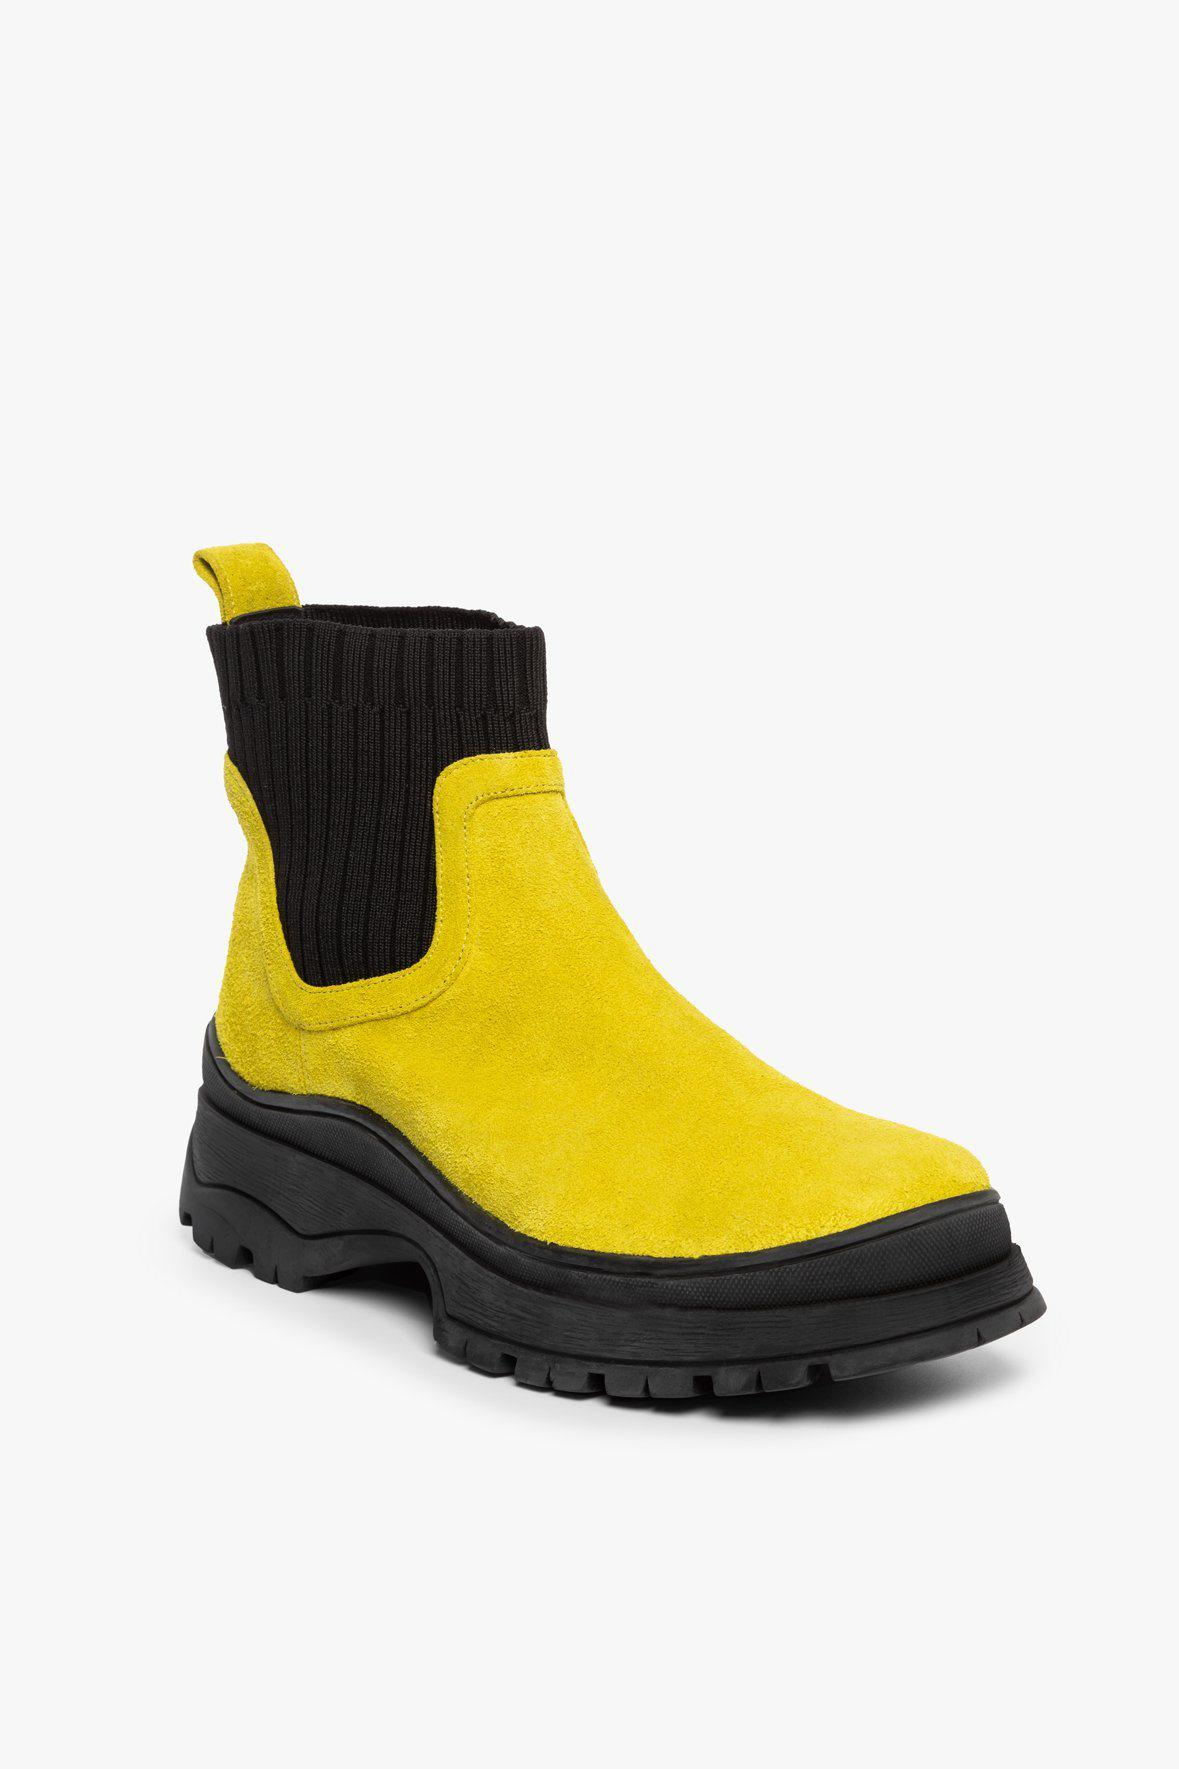 BOW BOOT | CHARTREUSE BLACK